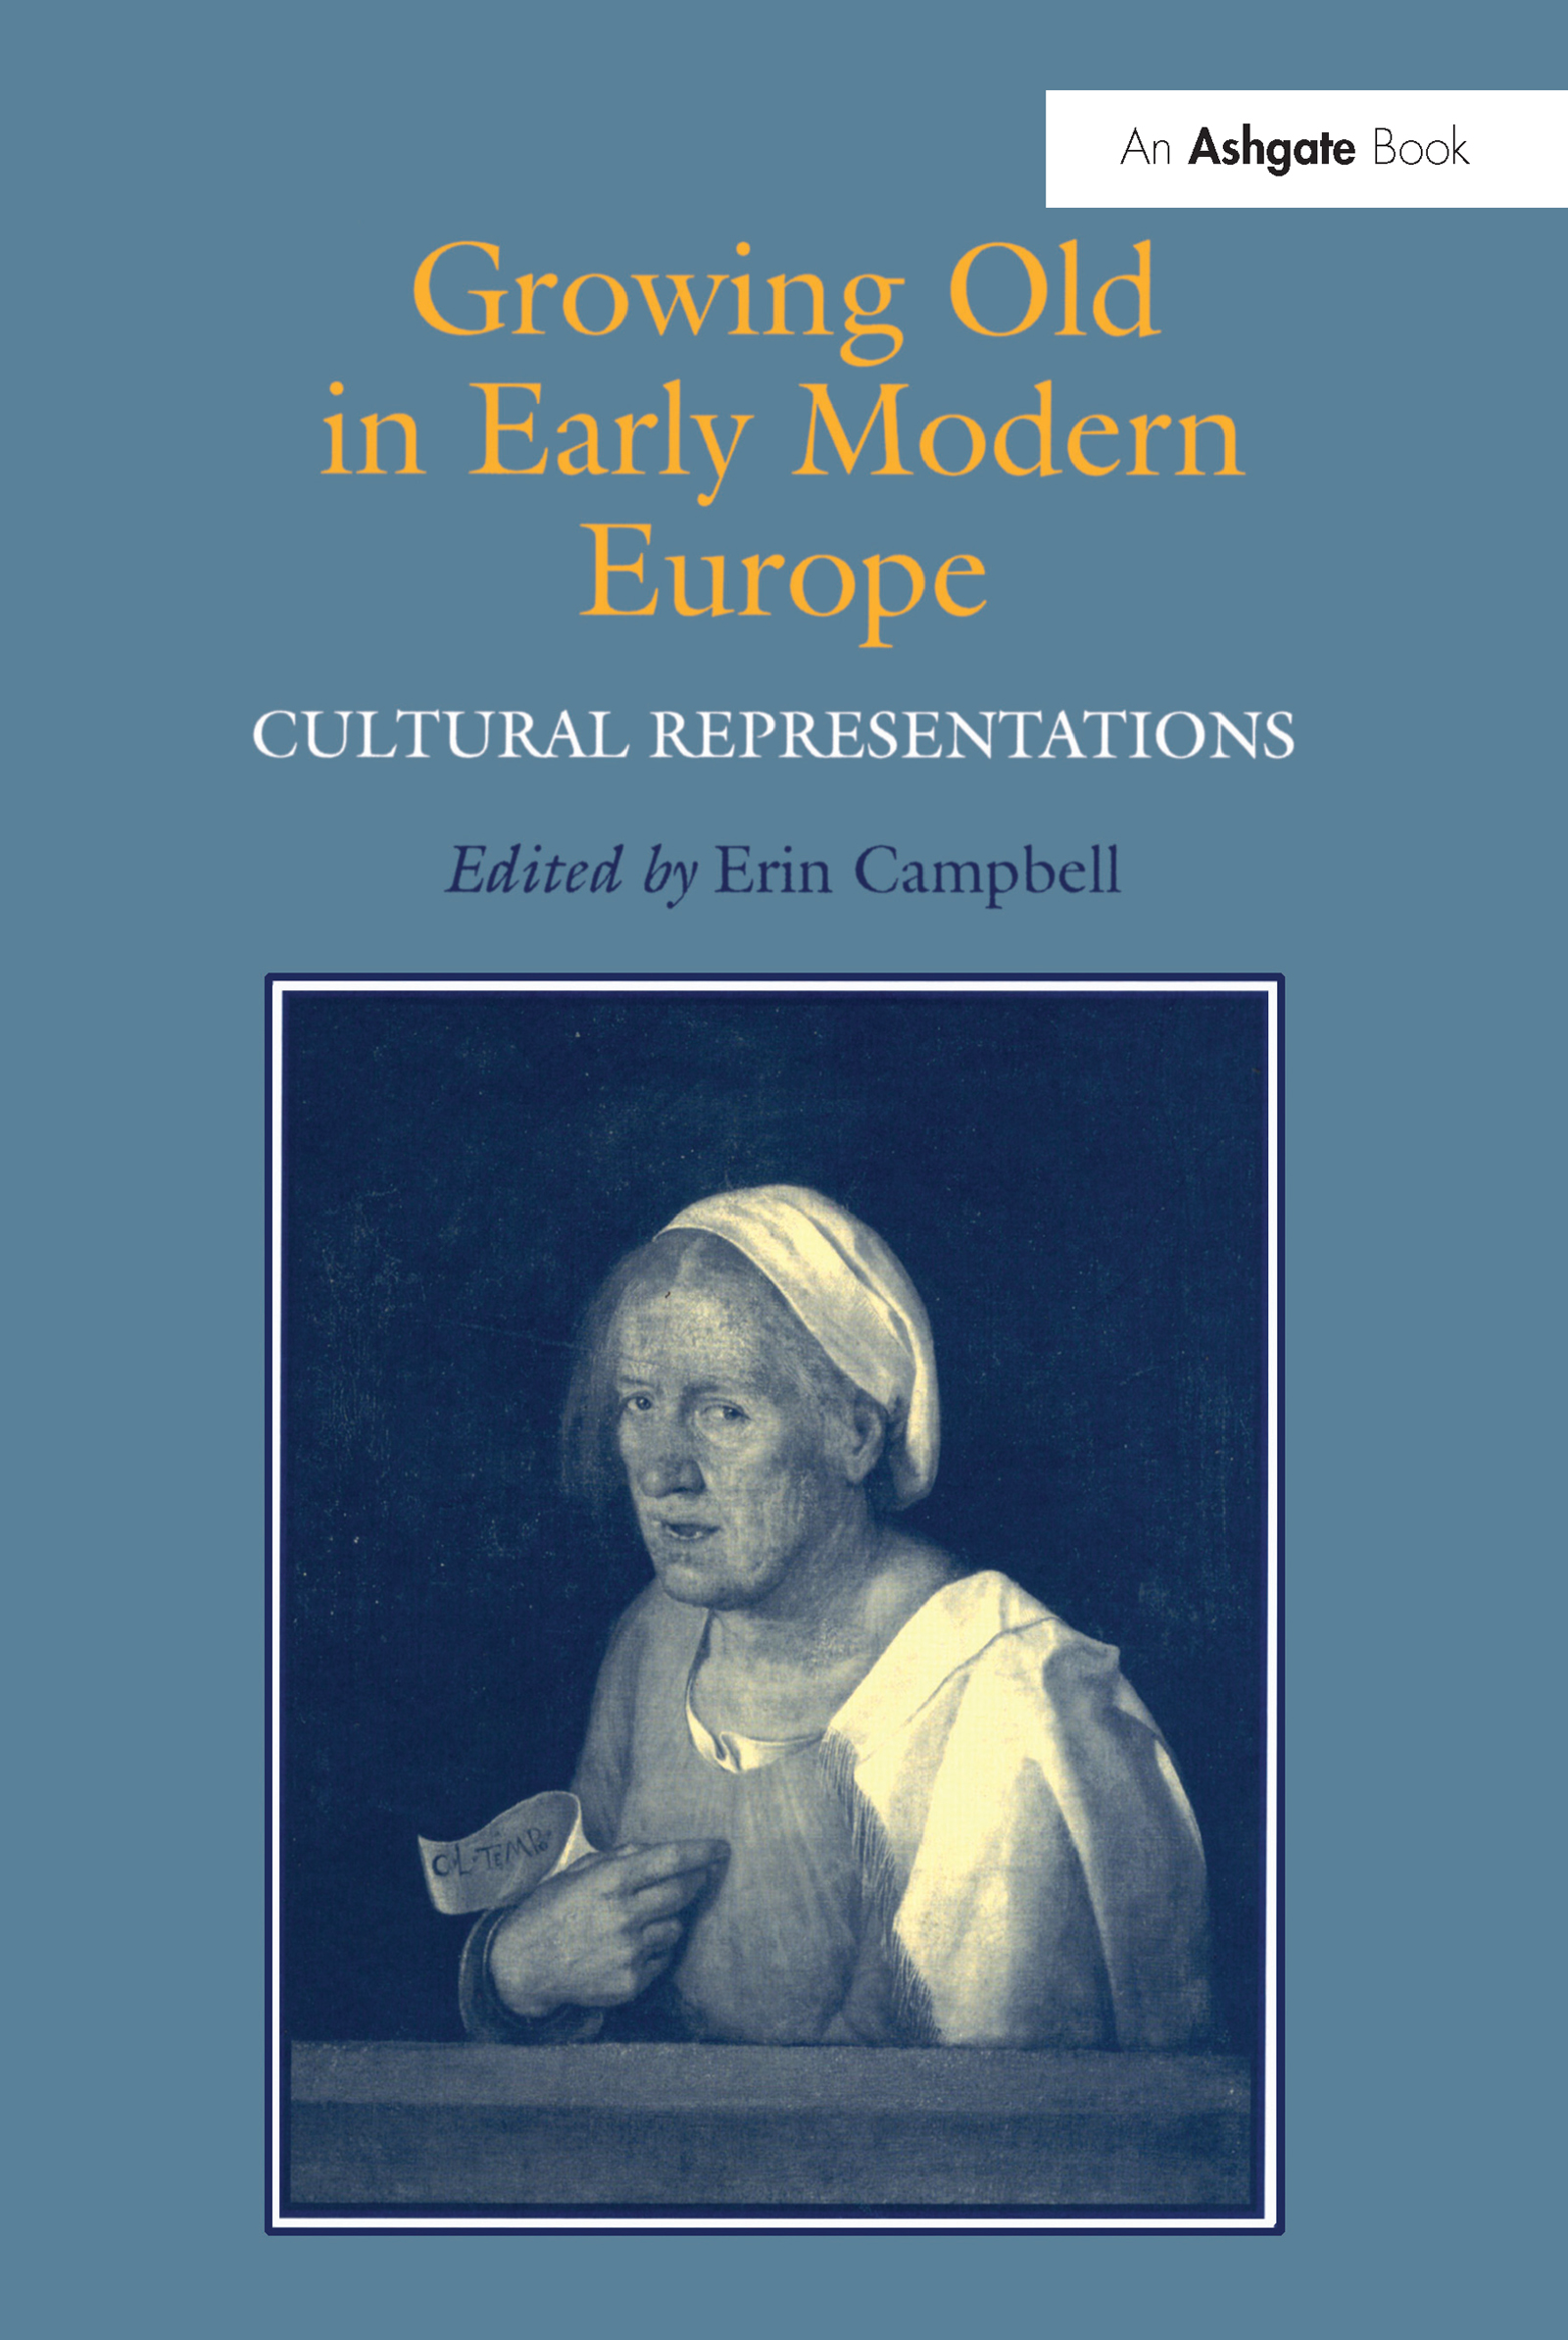 Growing Old in Early Modern Europe